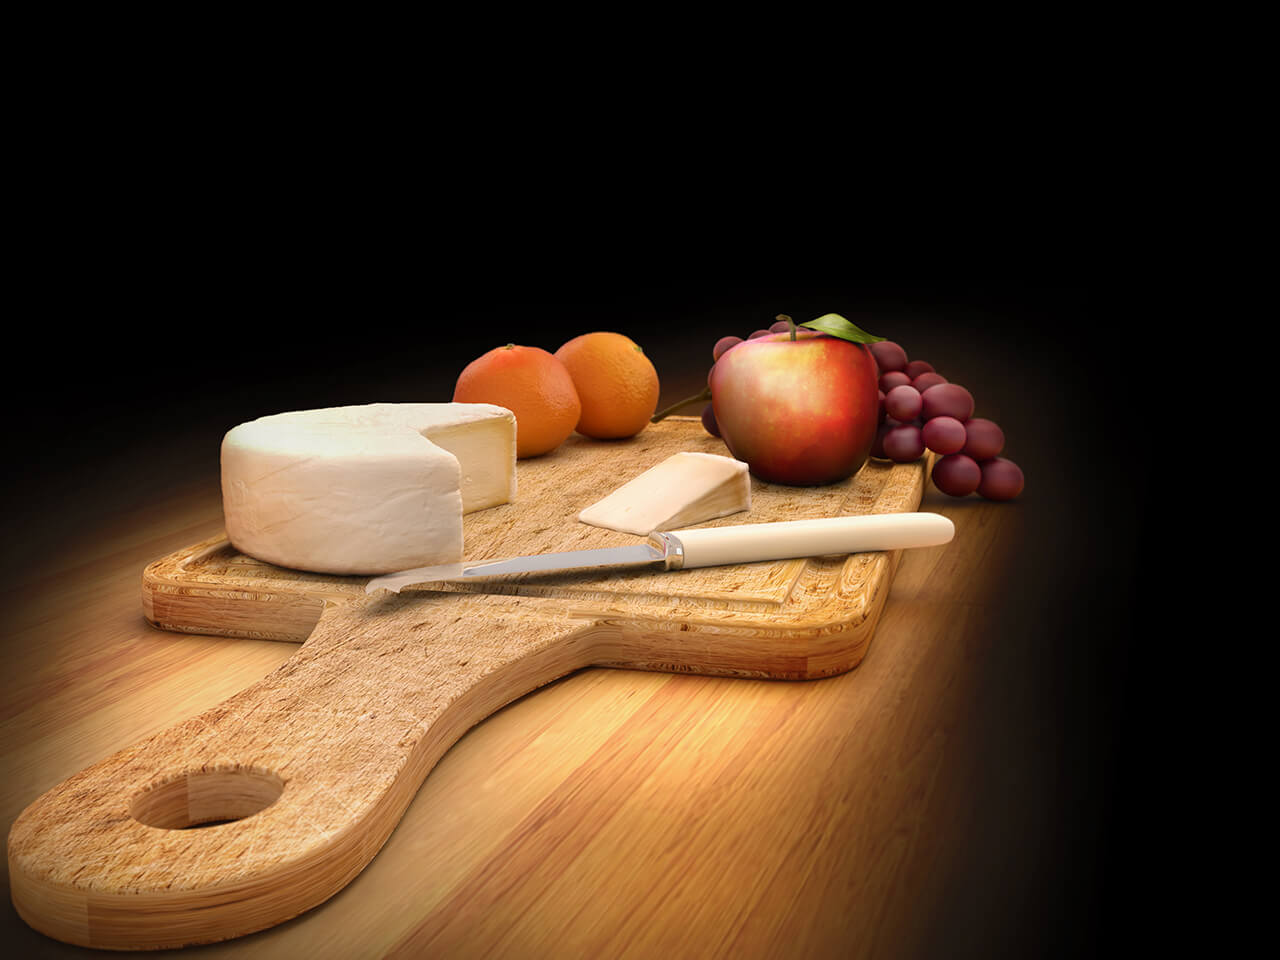 A computer generated image of a cheese board with fruit and knife